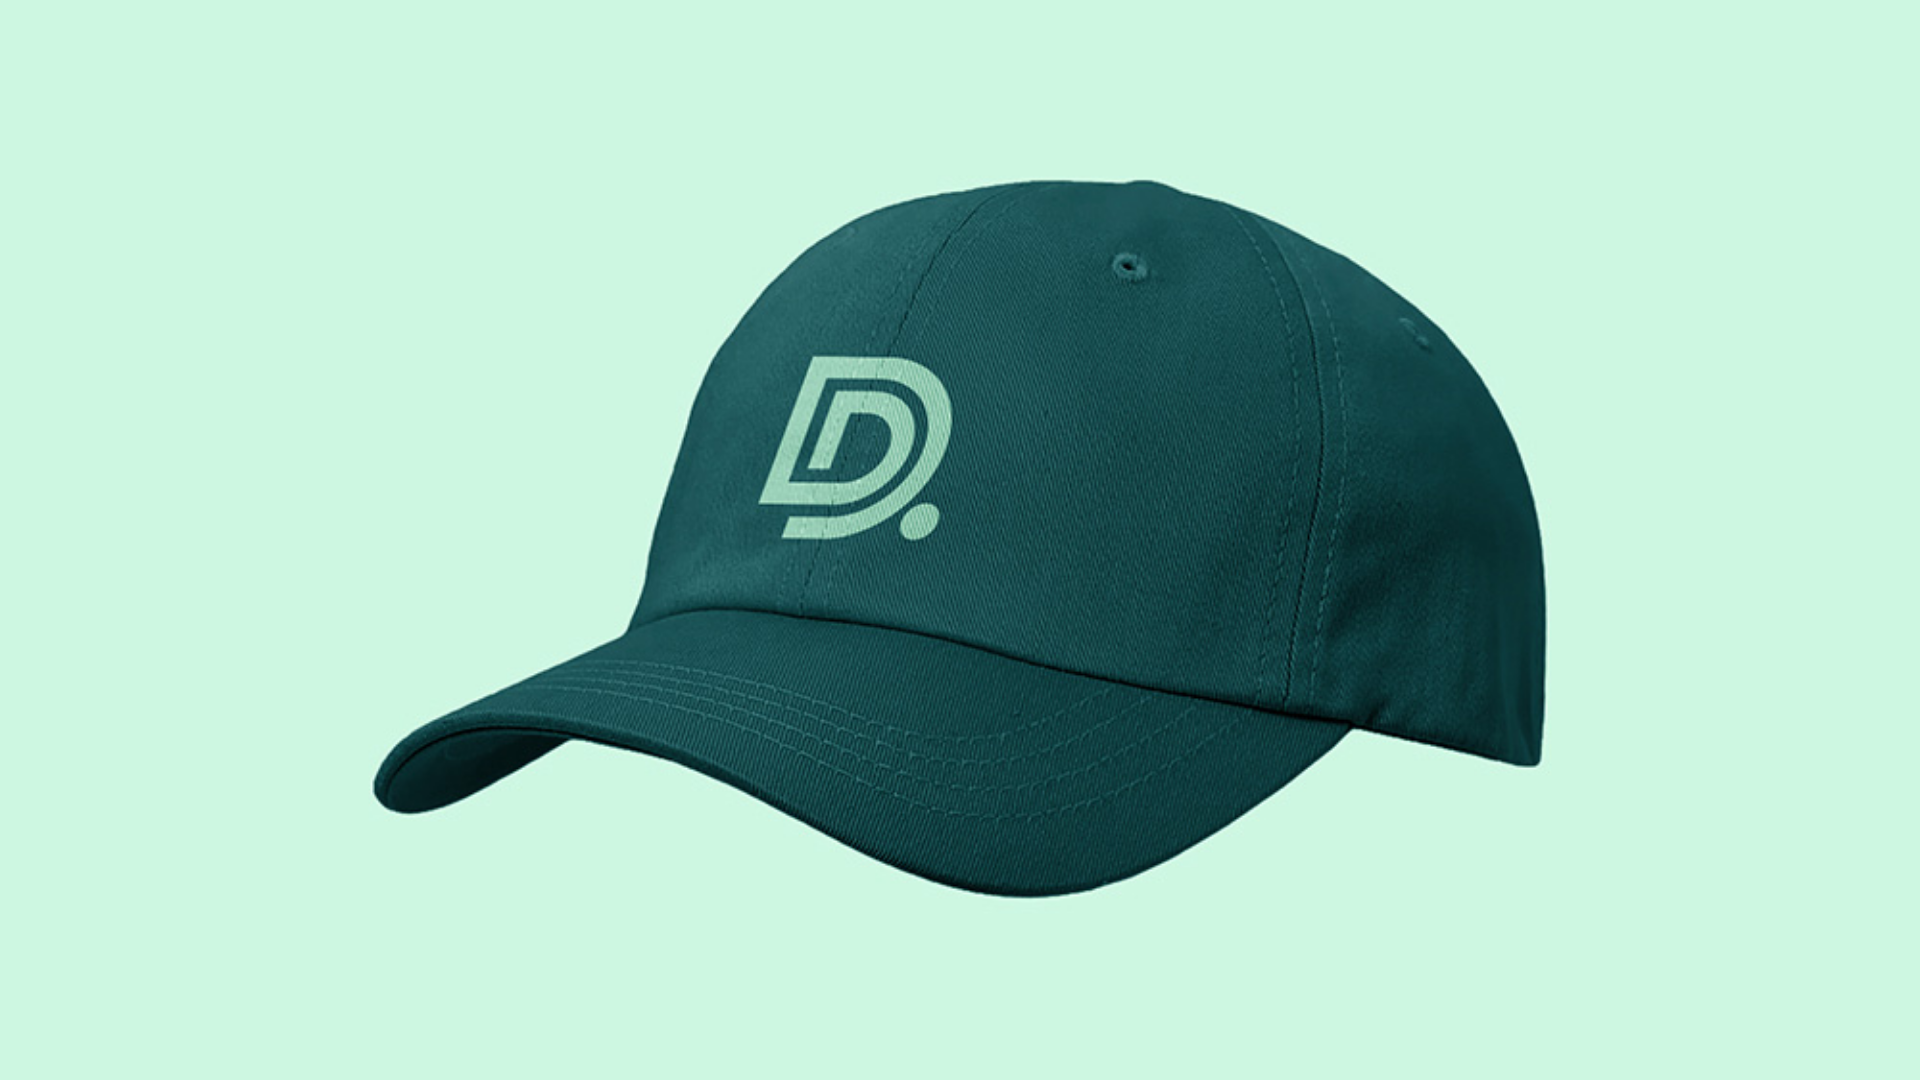 ddot_hat.png